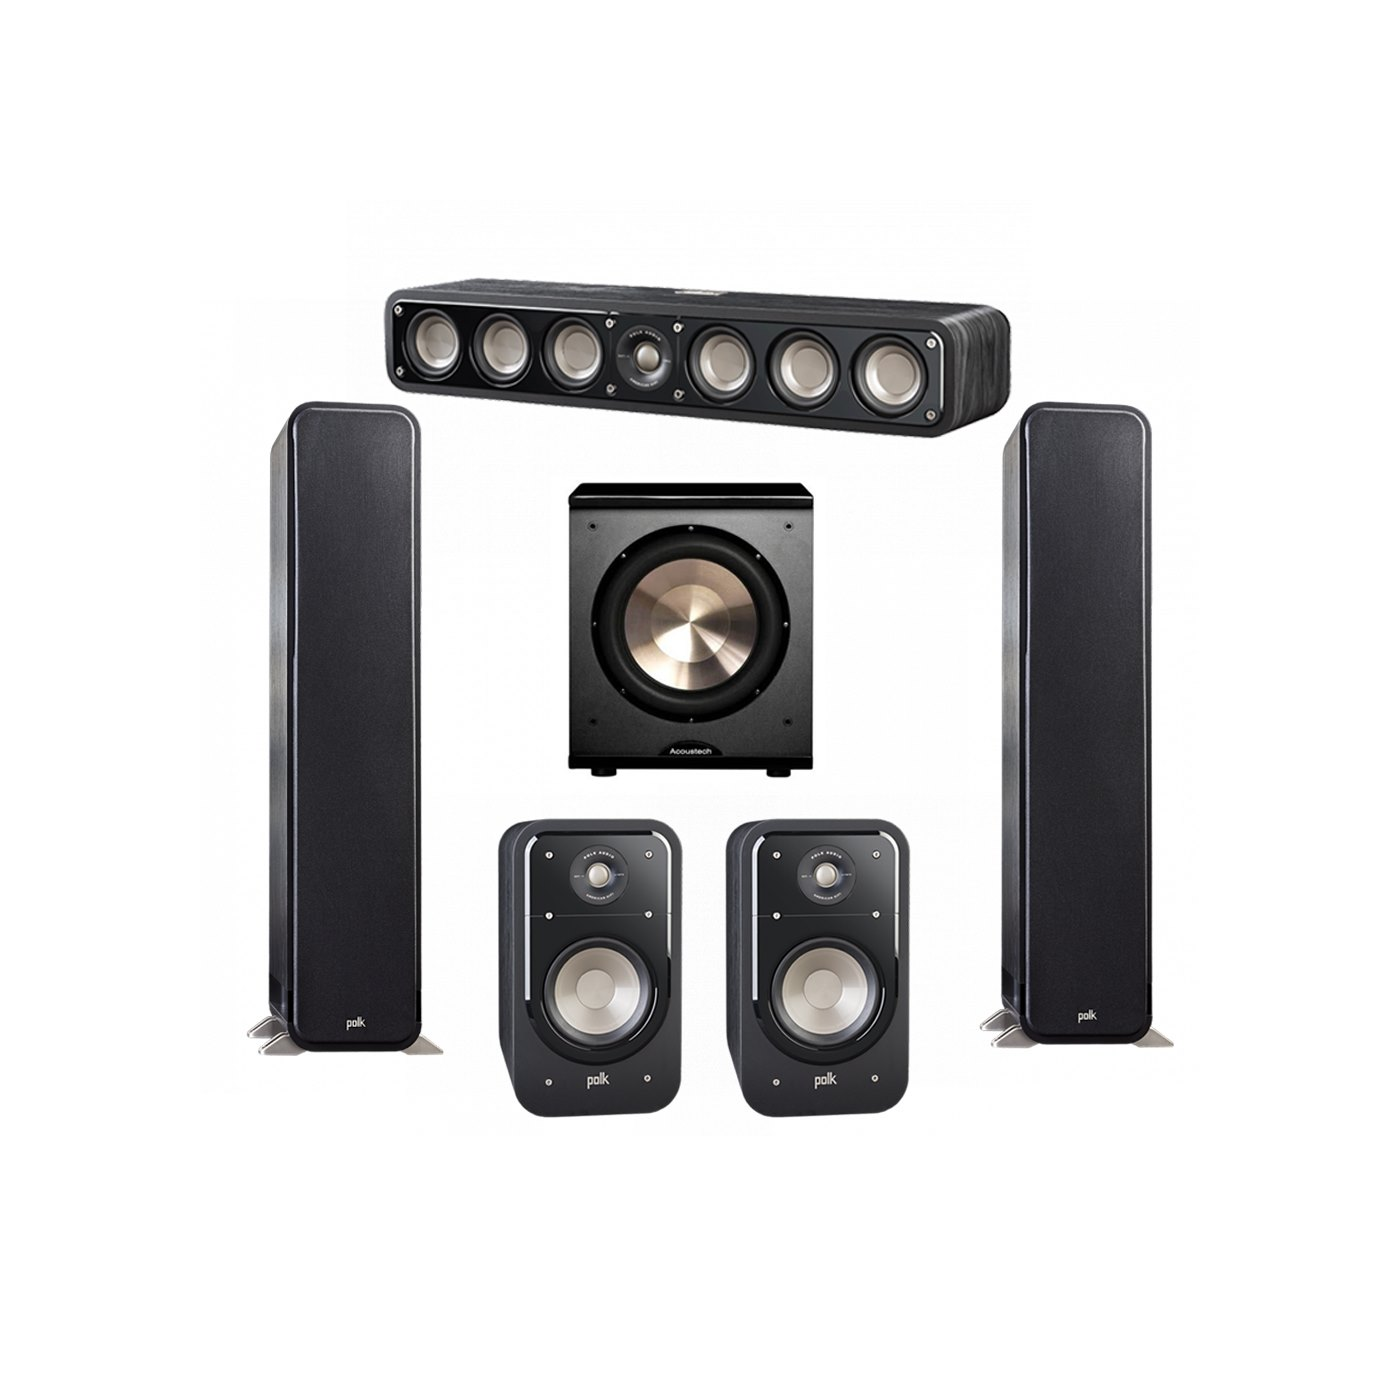 Polk Audio Signature 5.1 System with 2 S55 Tower Speaker, 1 Polk S35 Center Speaker, 2 Polk S20 Bookshelf Speaker, 1 BIC/Acoustech Platinum Series PL-200 Subwoofer